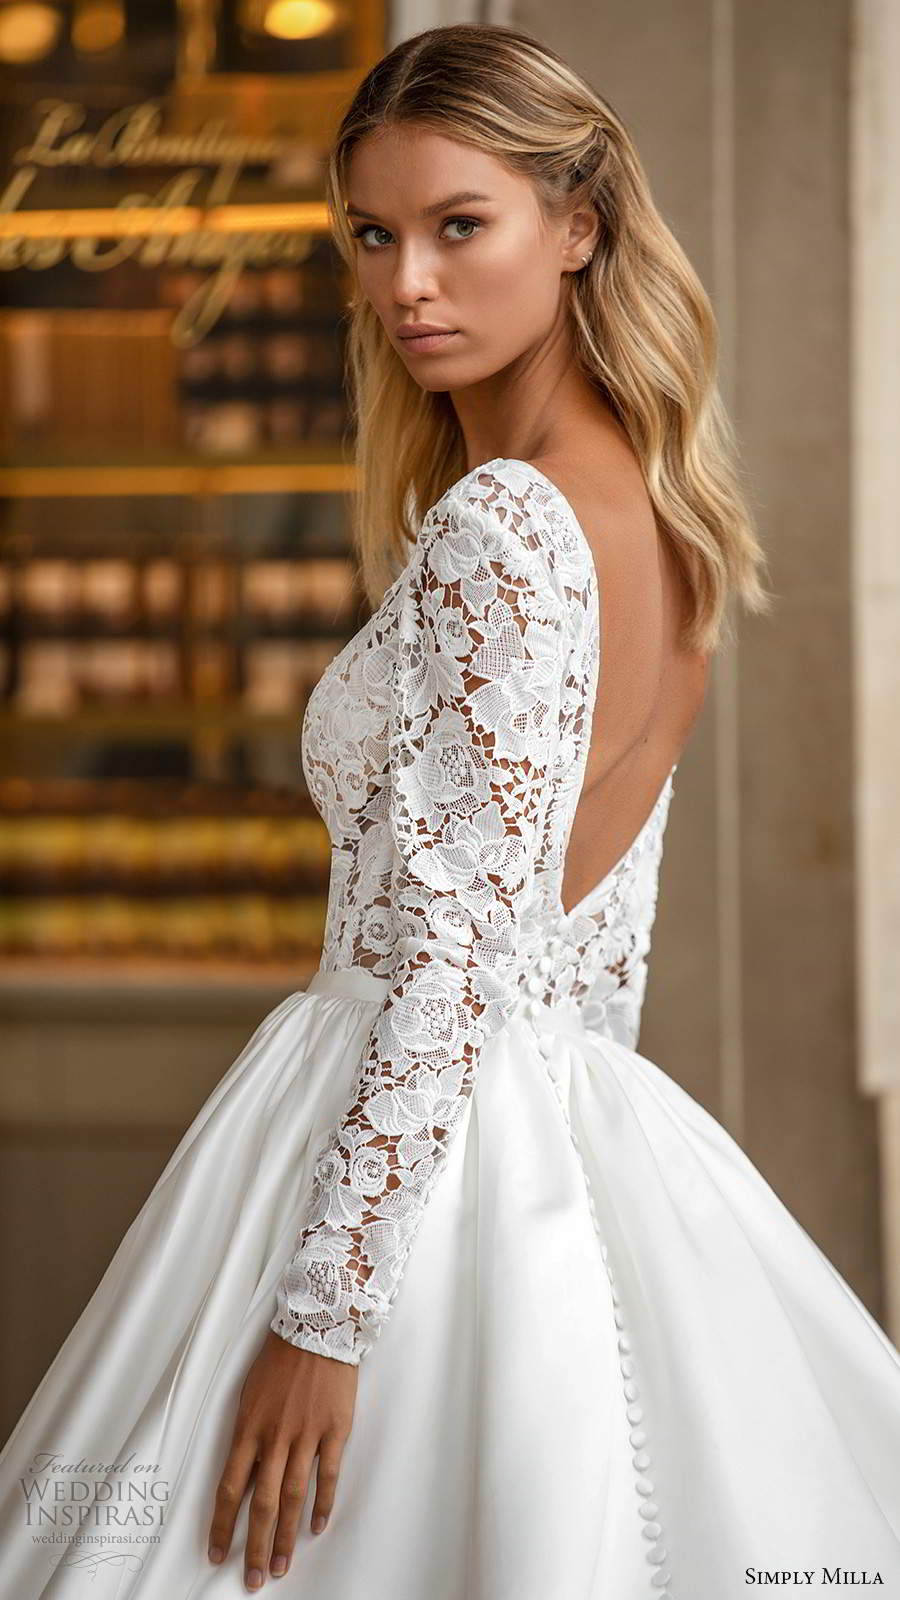 simply milla nova 2020 bridal long sleeves plunging neckline embellished lace bodice clean skirt a line ball gown wedding dress chapel train (5) zbv